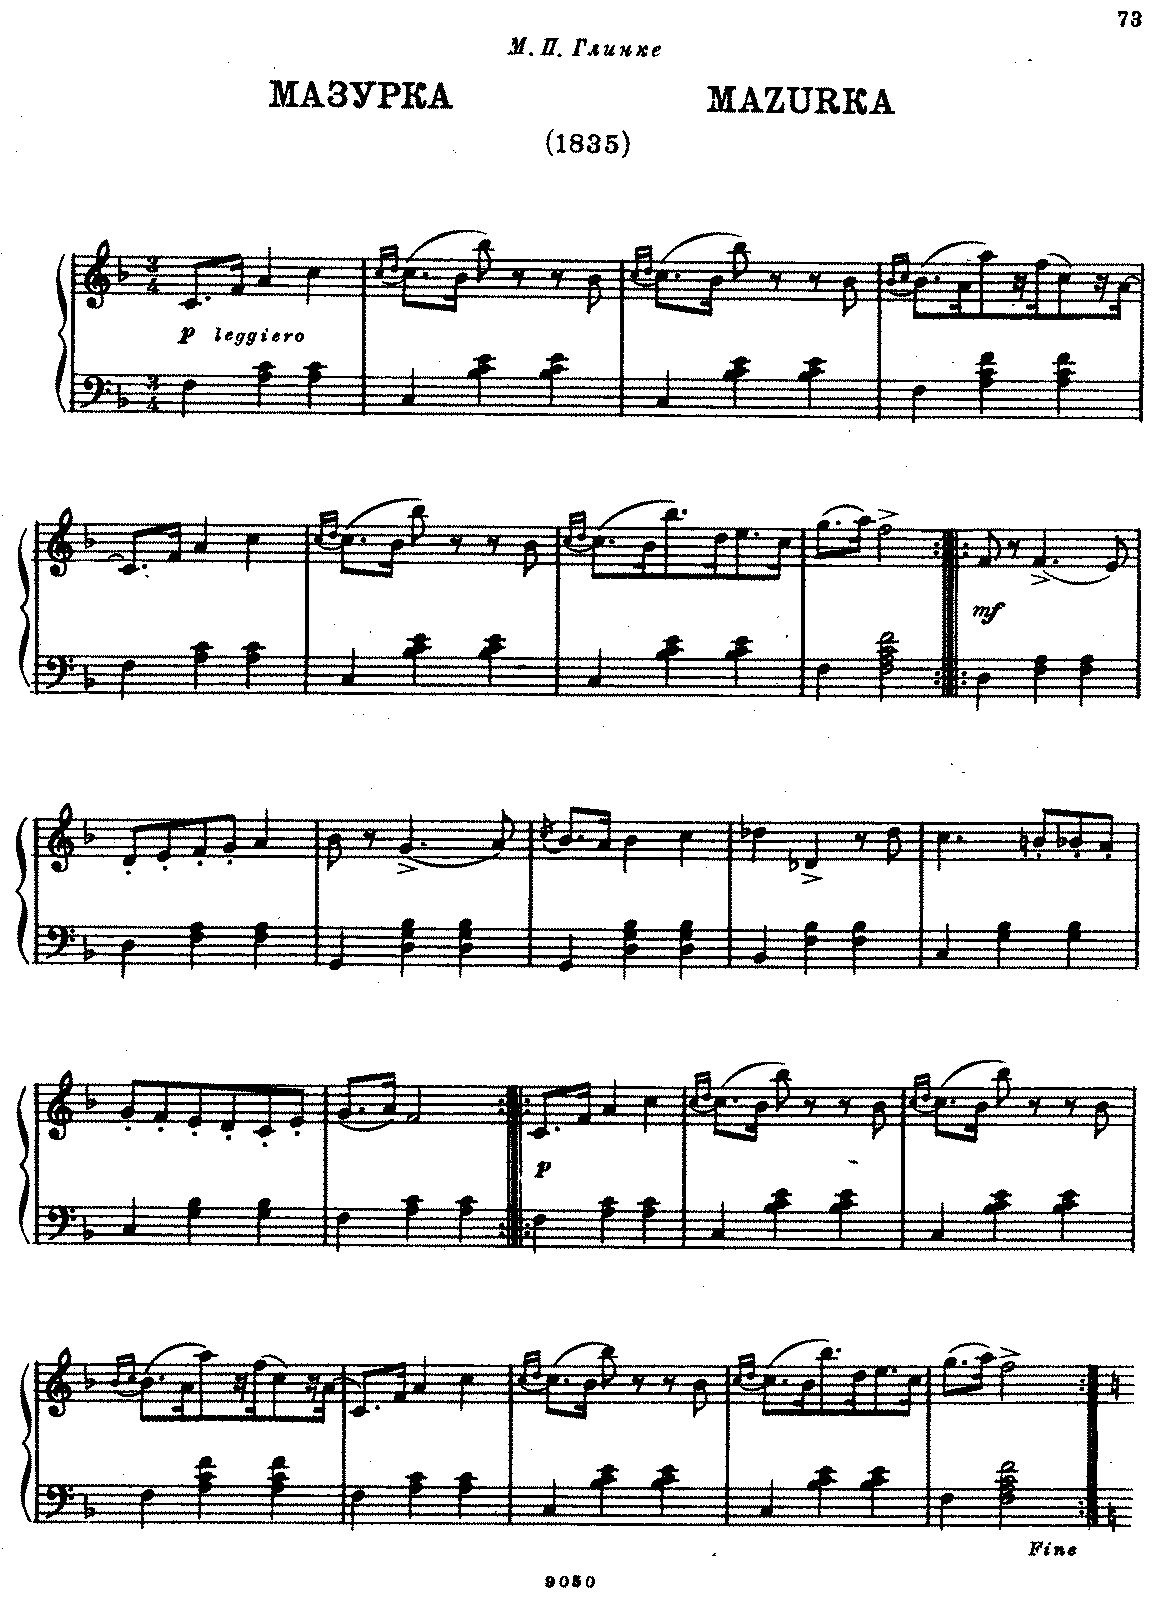 Glinka - Mazukra in F Major (1835).pdf